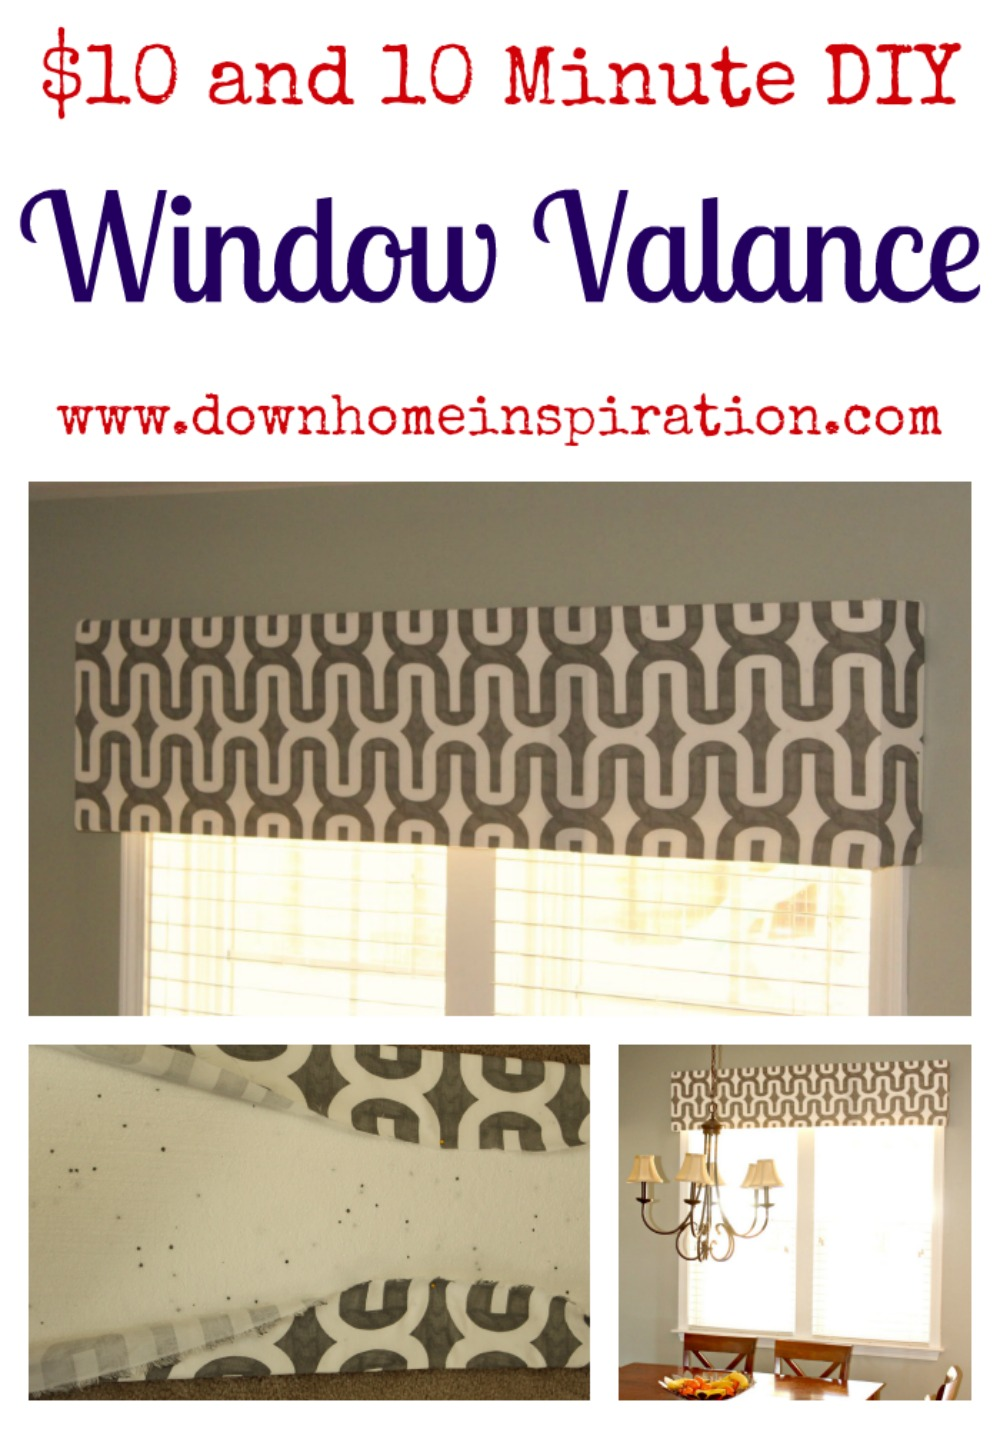 10 and 10 minute diy window valance